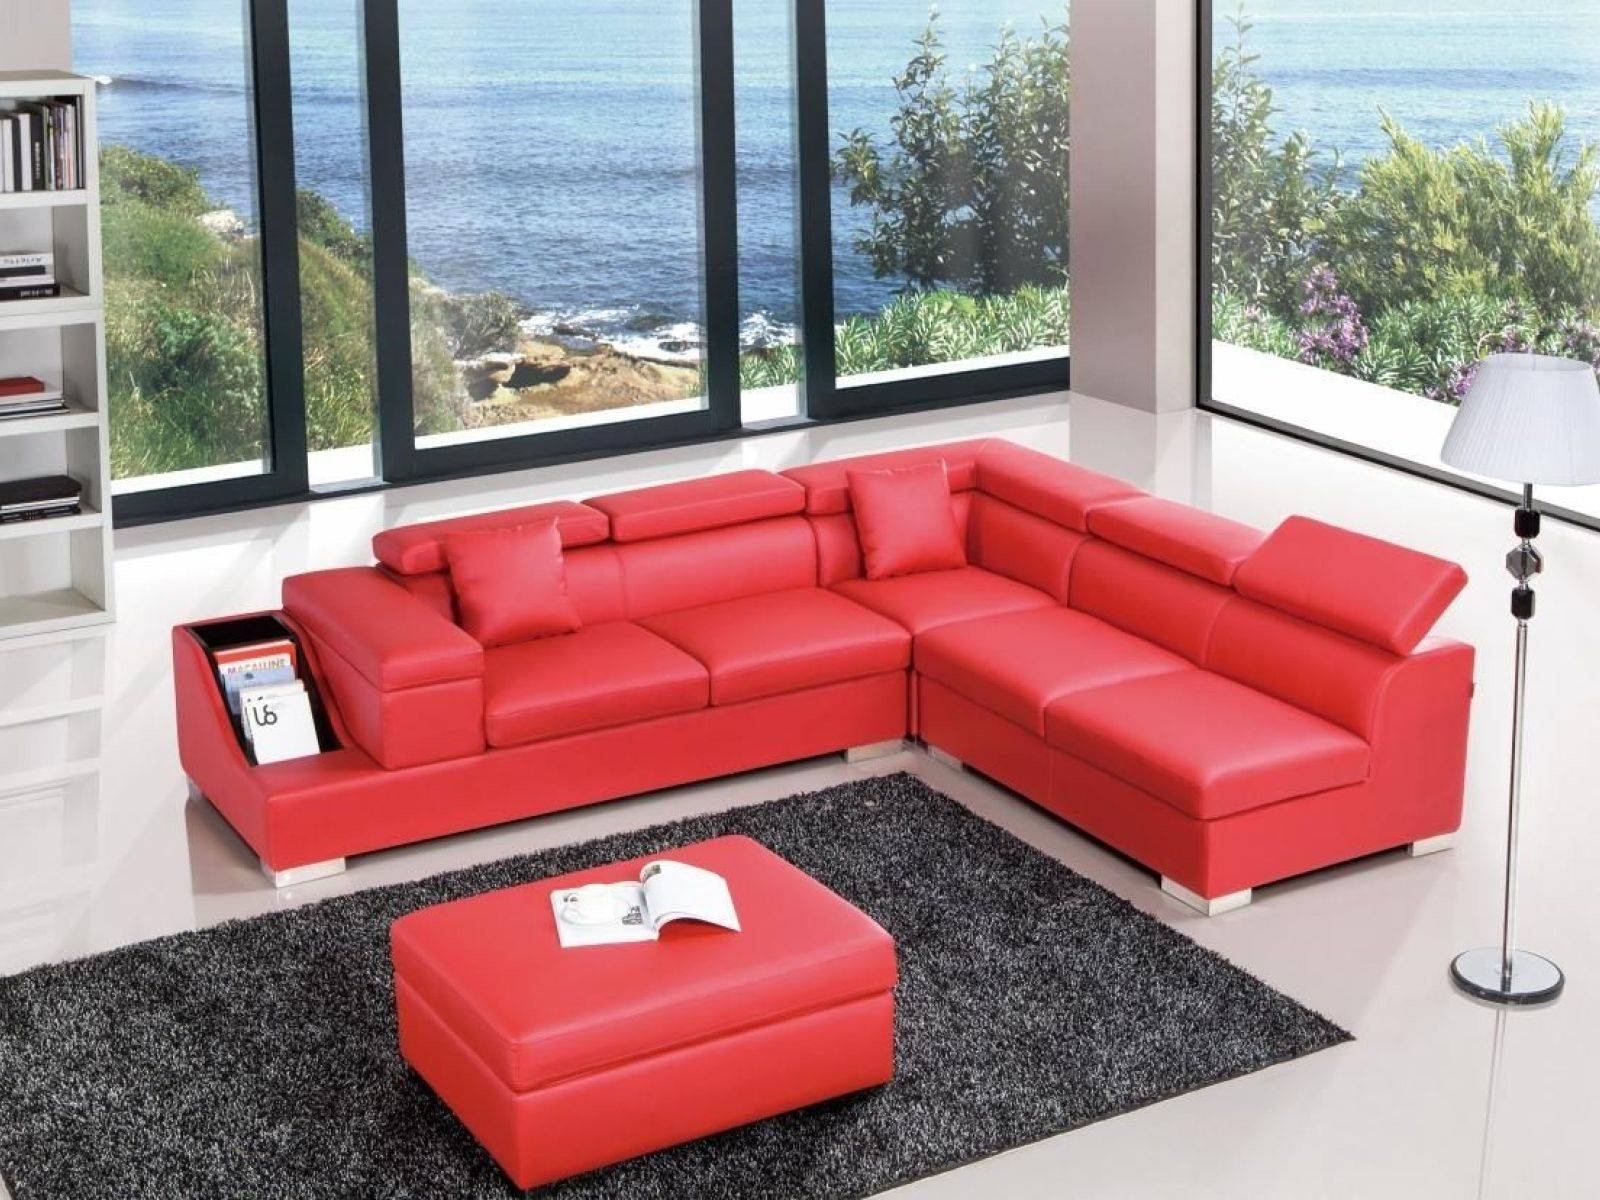 ▻ Sofa : 9 Awesome Leather Sofa Sectionals On Sale Wj21 Wonderful with regard to Leather Sofa Sectionals for Sale (Image 29 of 30)